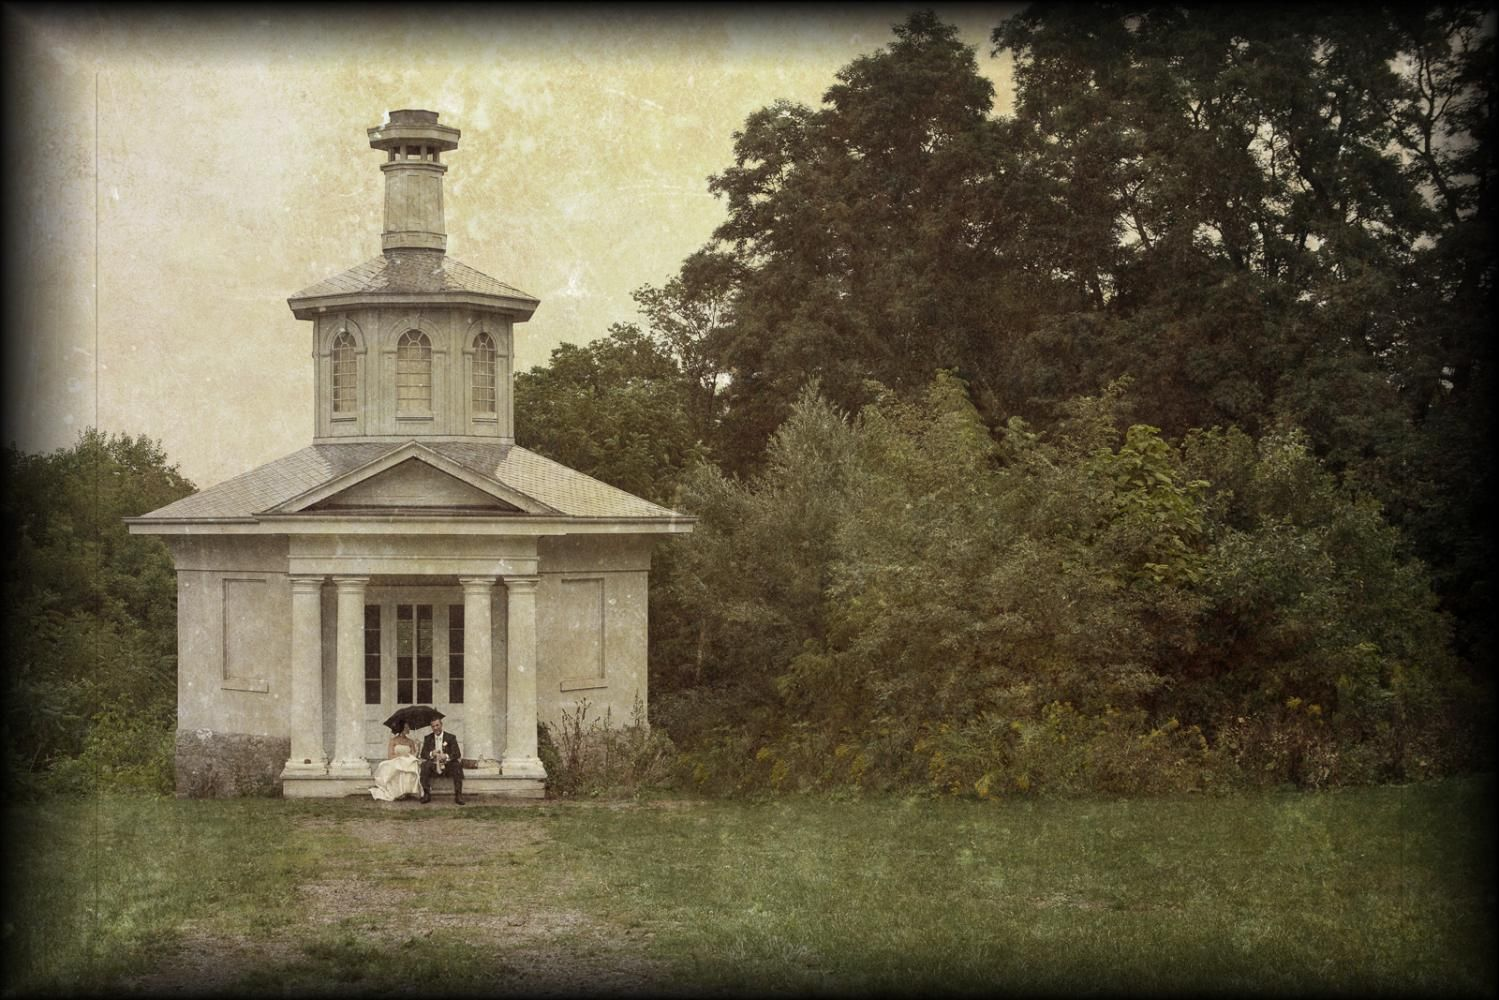 Brian Reilly Photography - Bride & groom share champagne and a private moment out front of beautiful old schoolhouse. Hamilton, Ont.